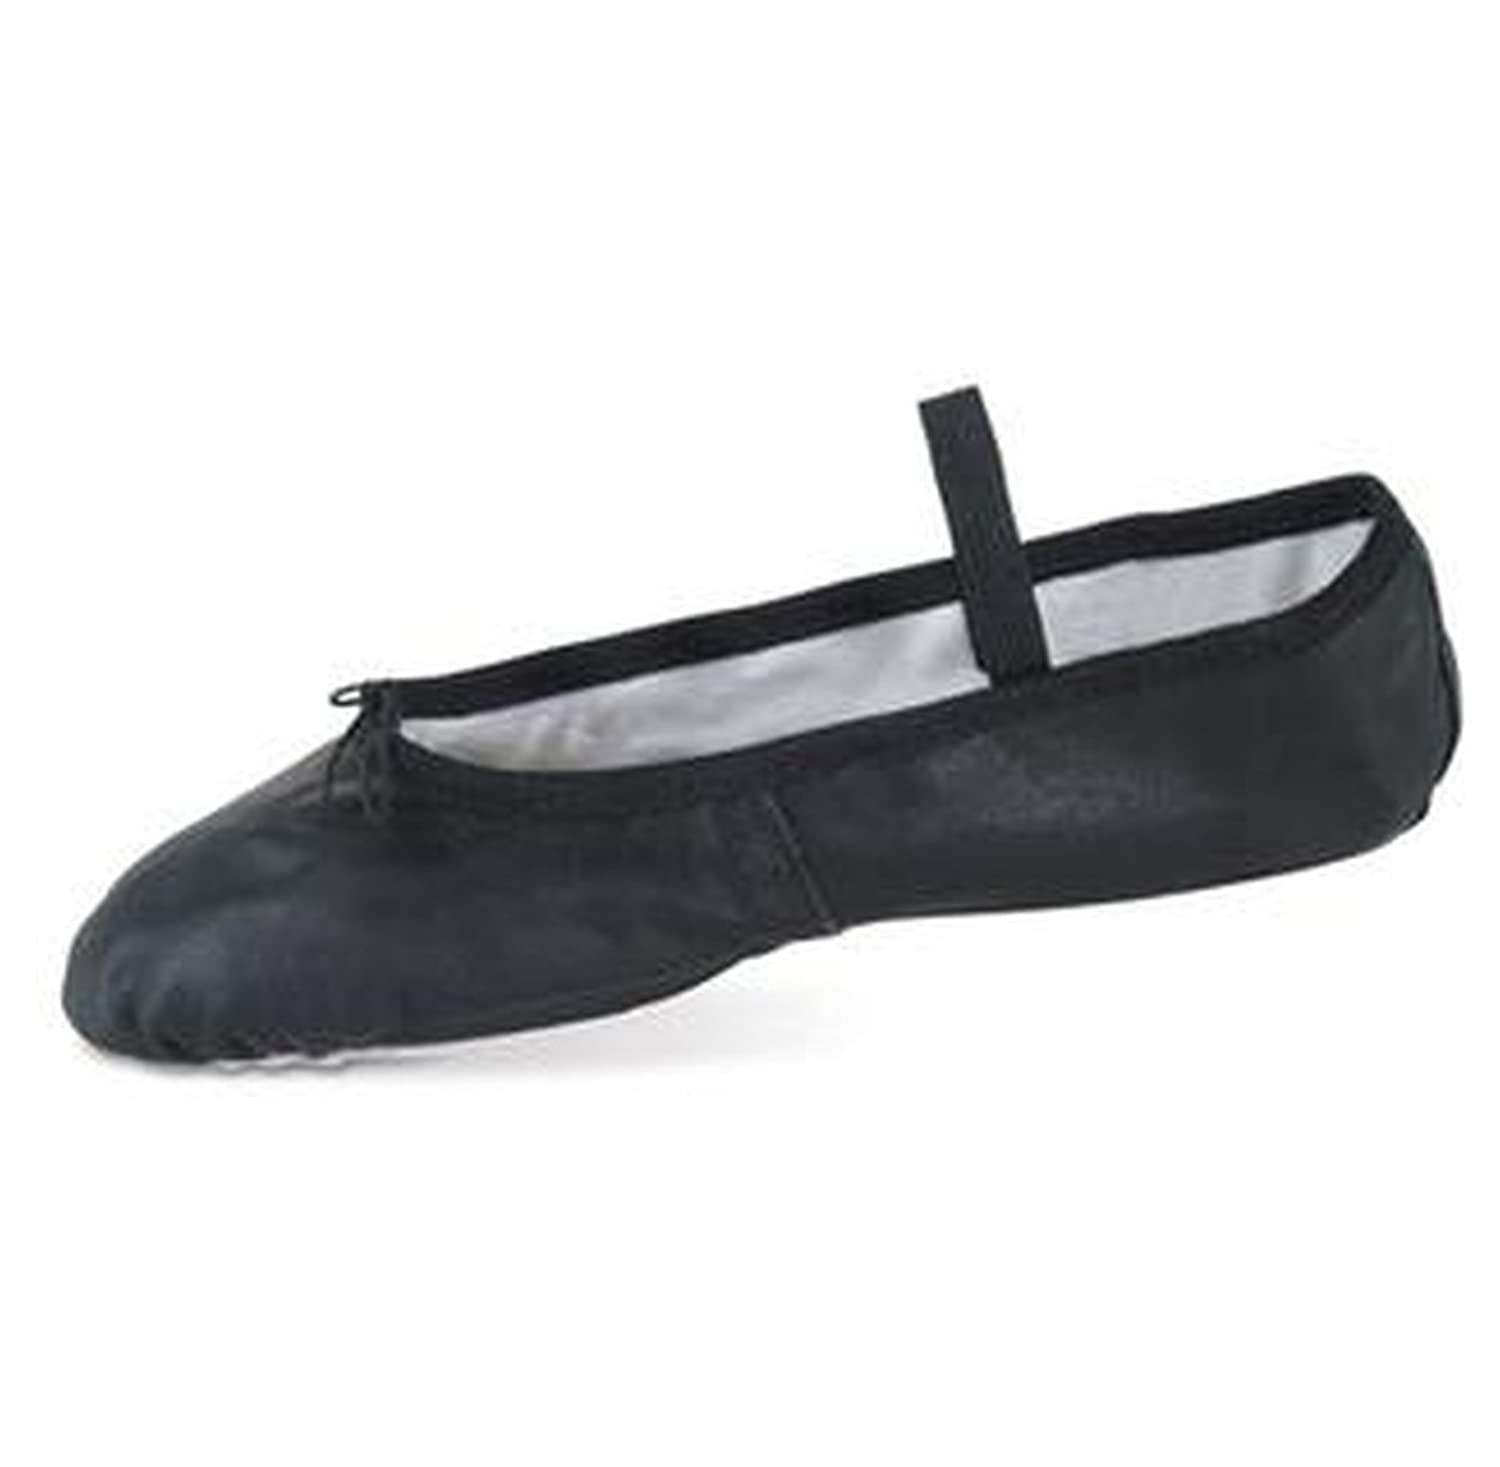 Deluxe Leather Ballet Shoe (Black Leather)